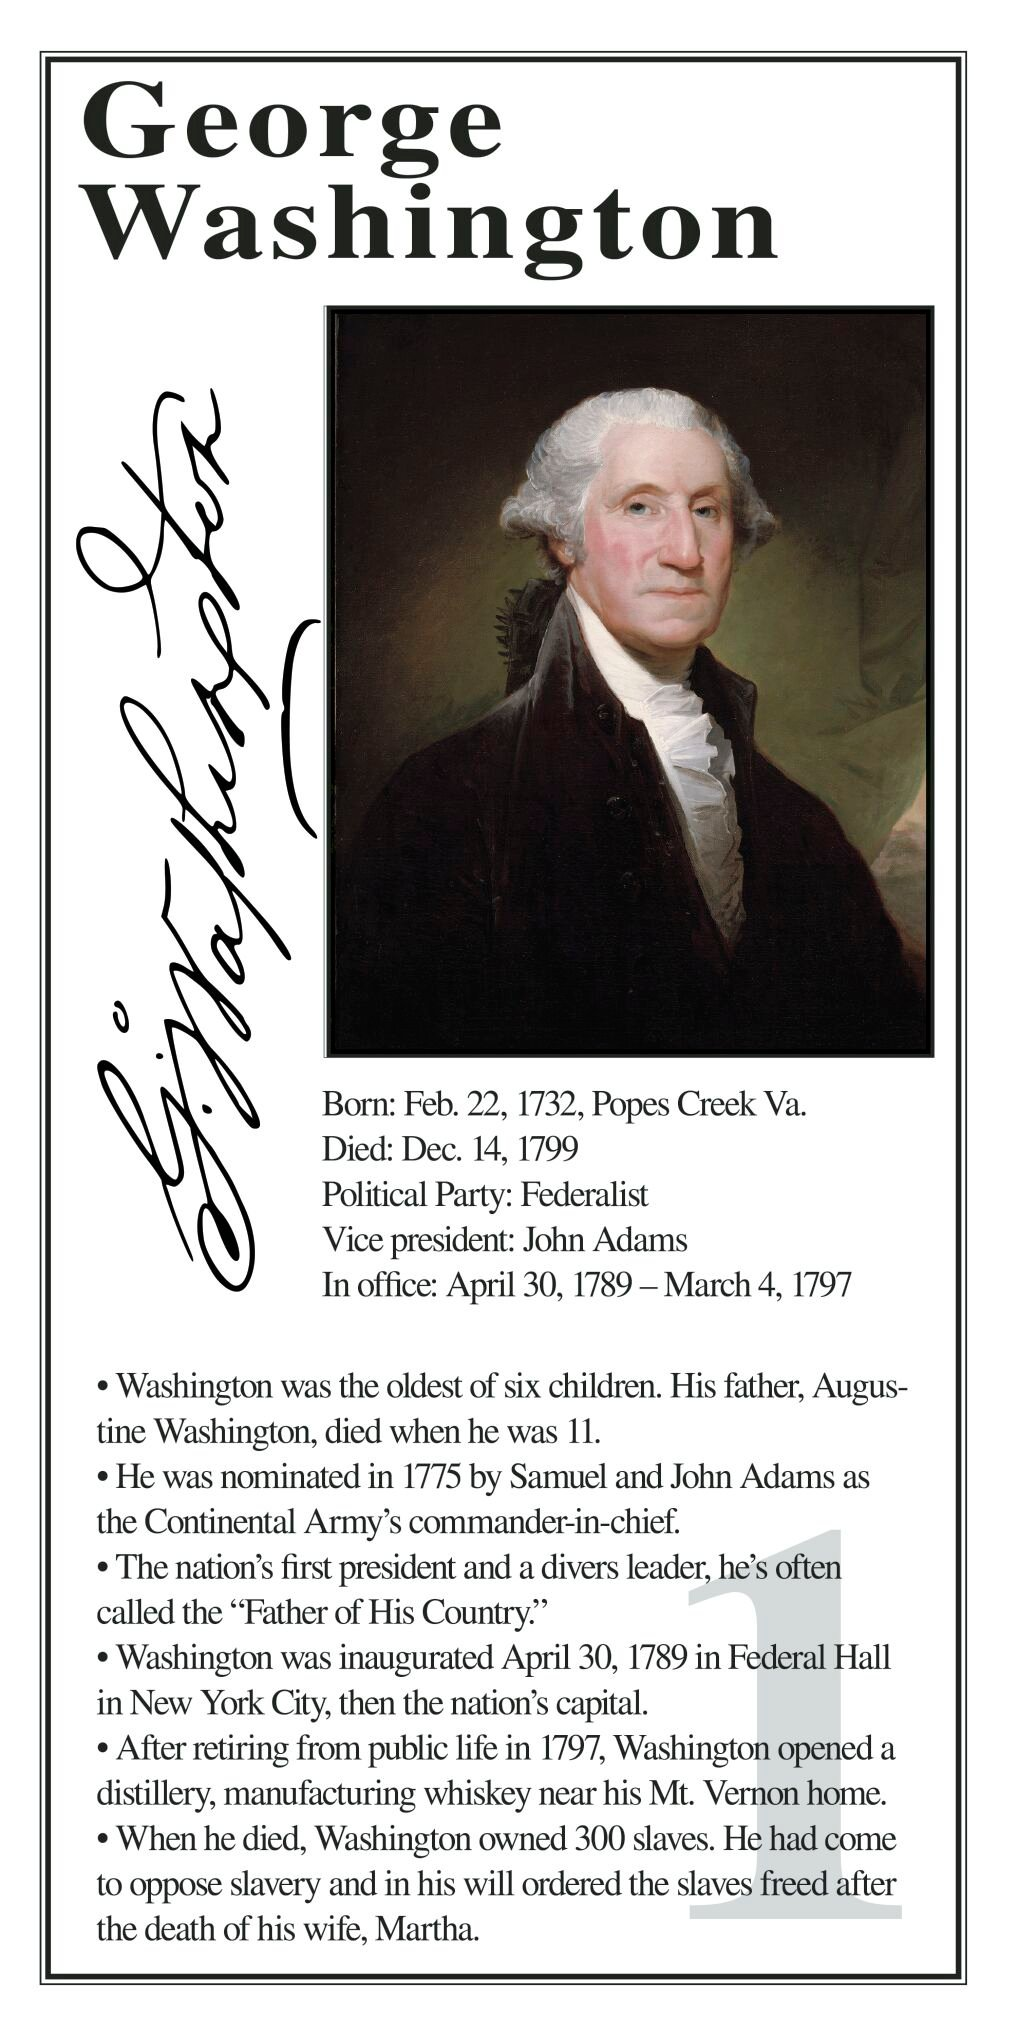 U.S. Presidents: George Washington